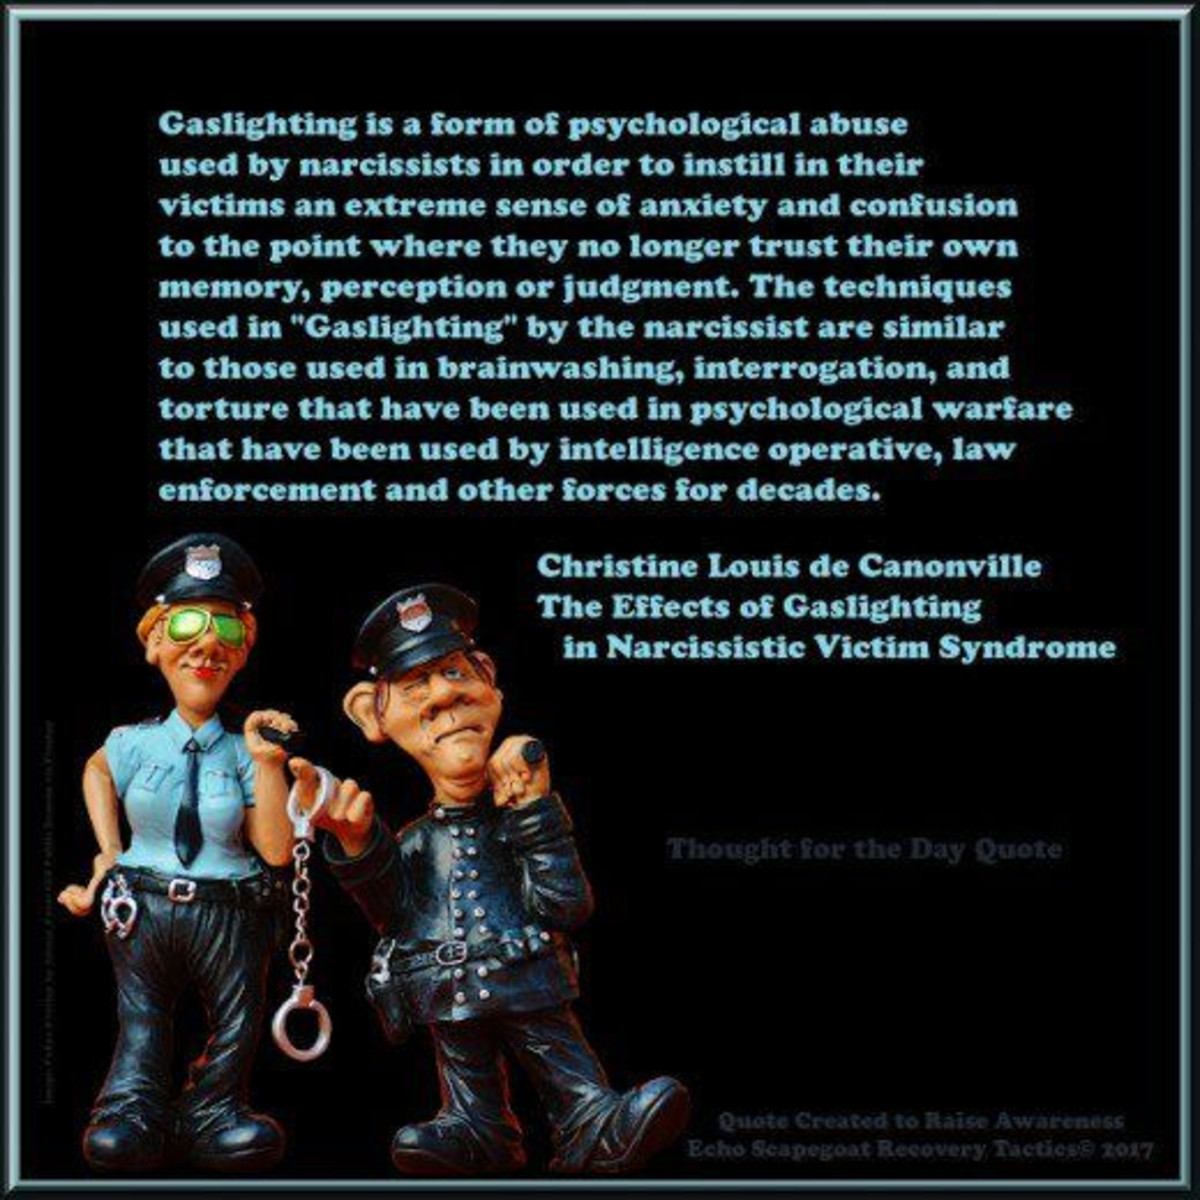 Gaslighting Quote by Christine Louis de Canonville